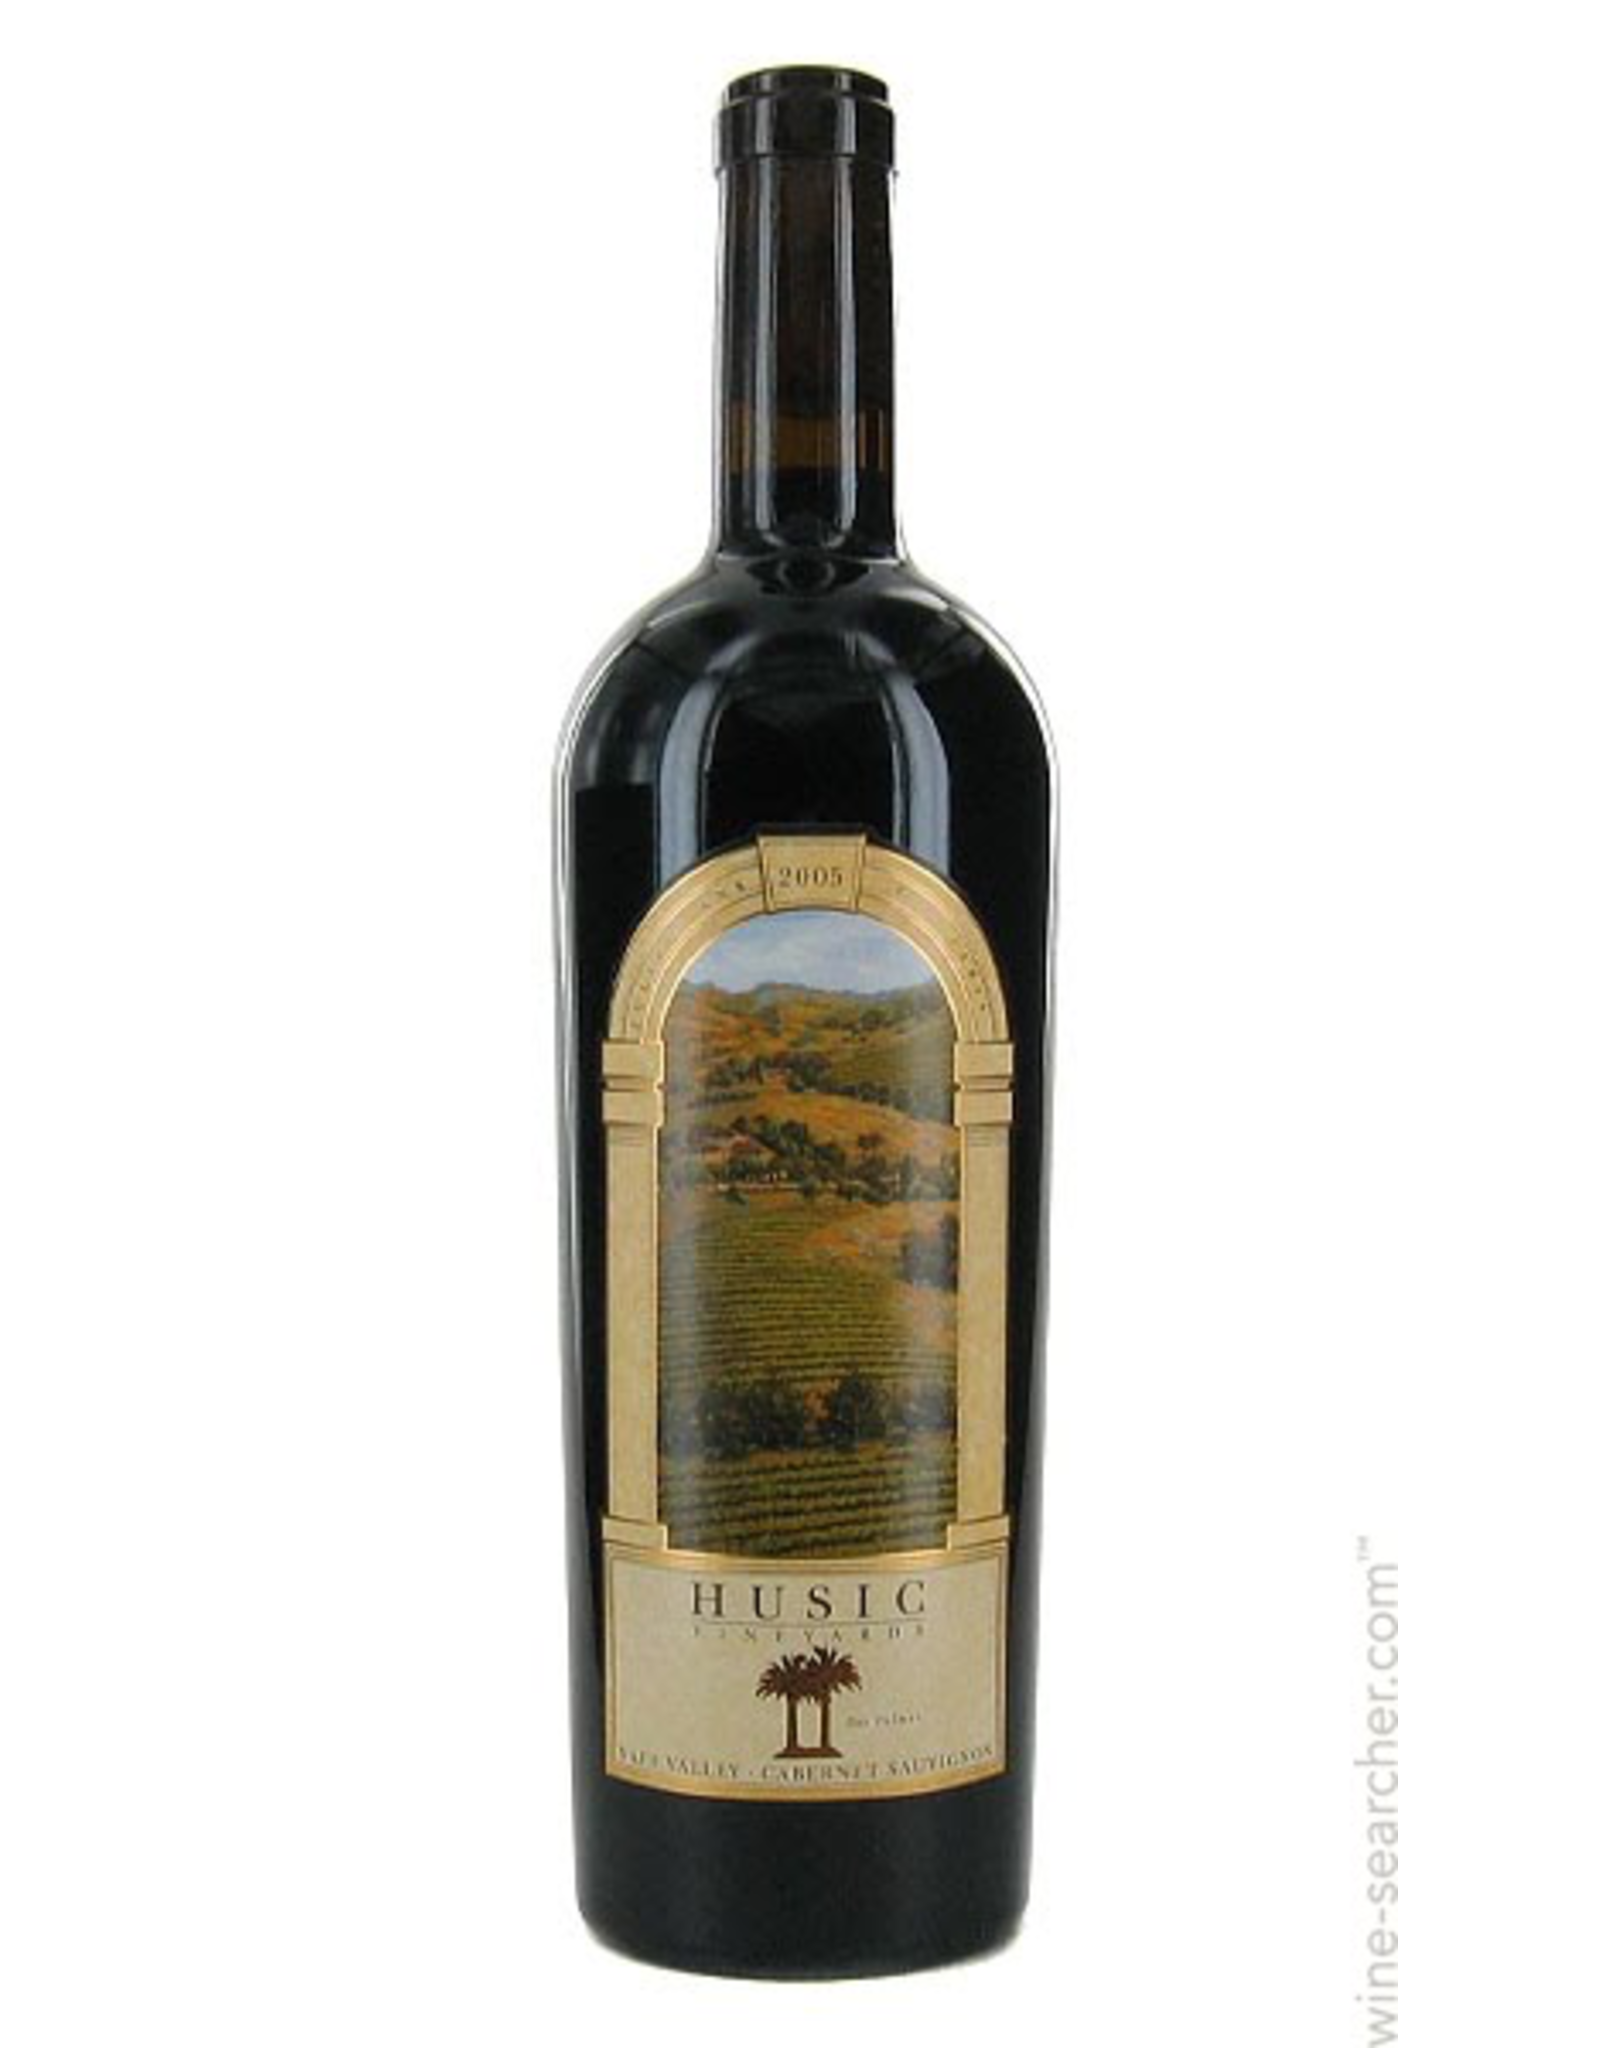 Red Wine 2008, Husic Vineyards, Cabernet Sauvignon, Dos Palmas Vineyard, Napa Valley, California, 15% Alc, CT91